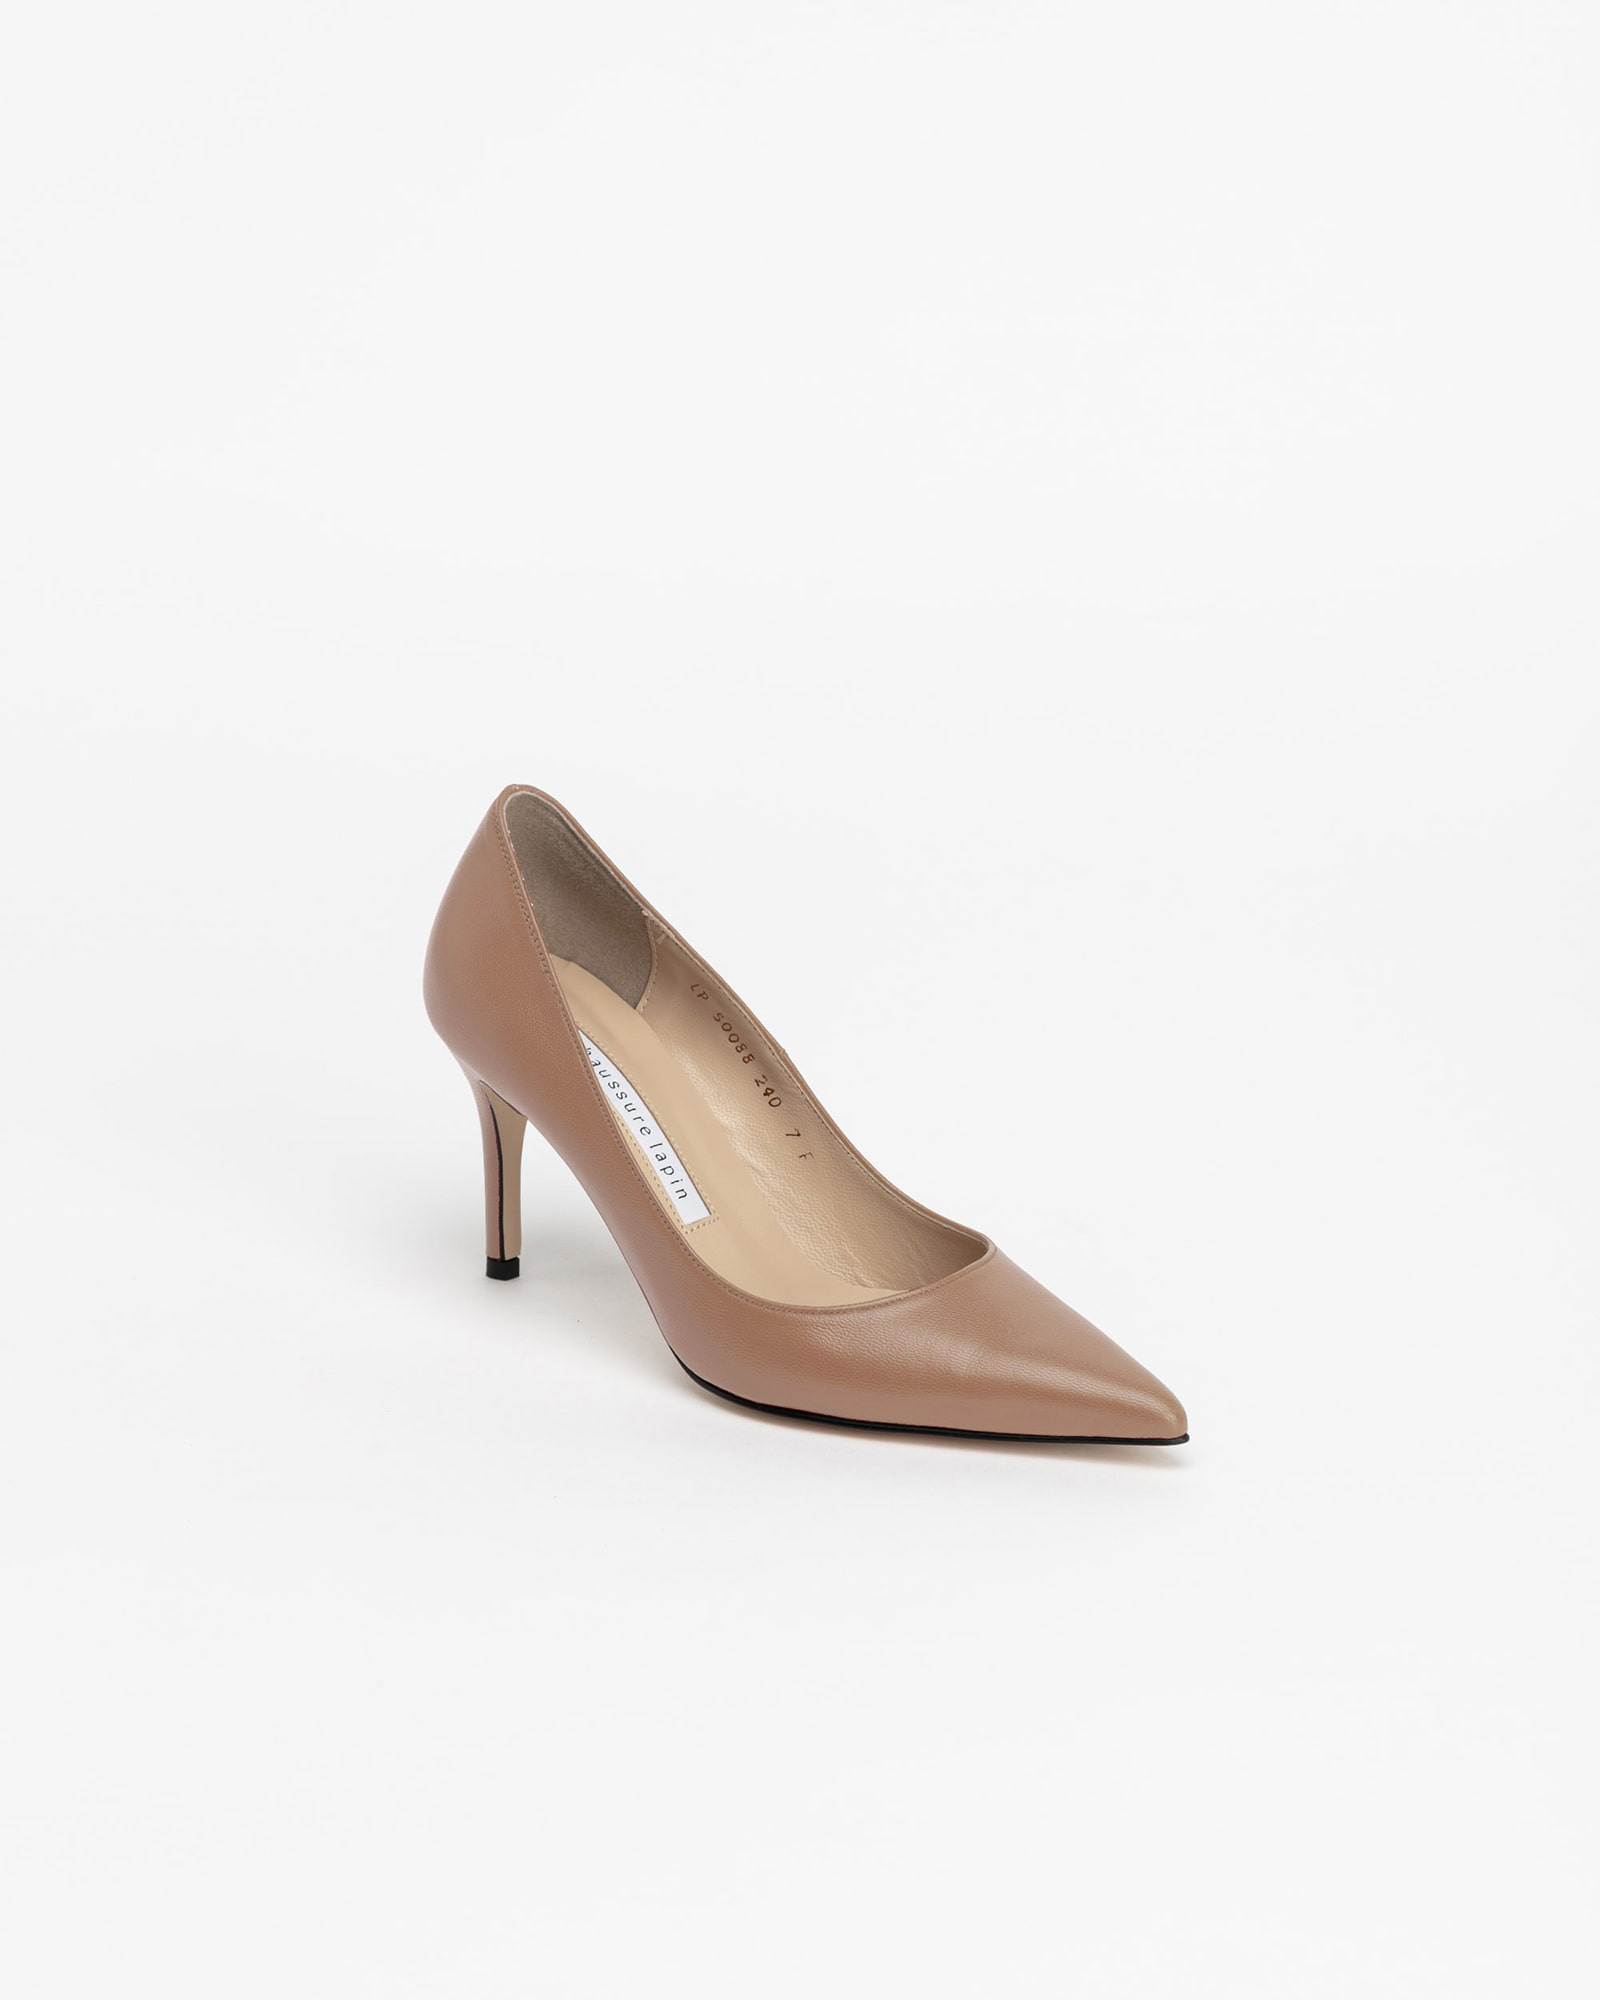 Chauffeur Stilletto Pumps in Pinky Beige